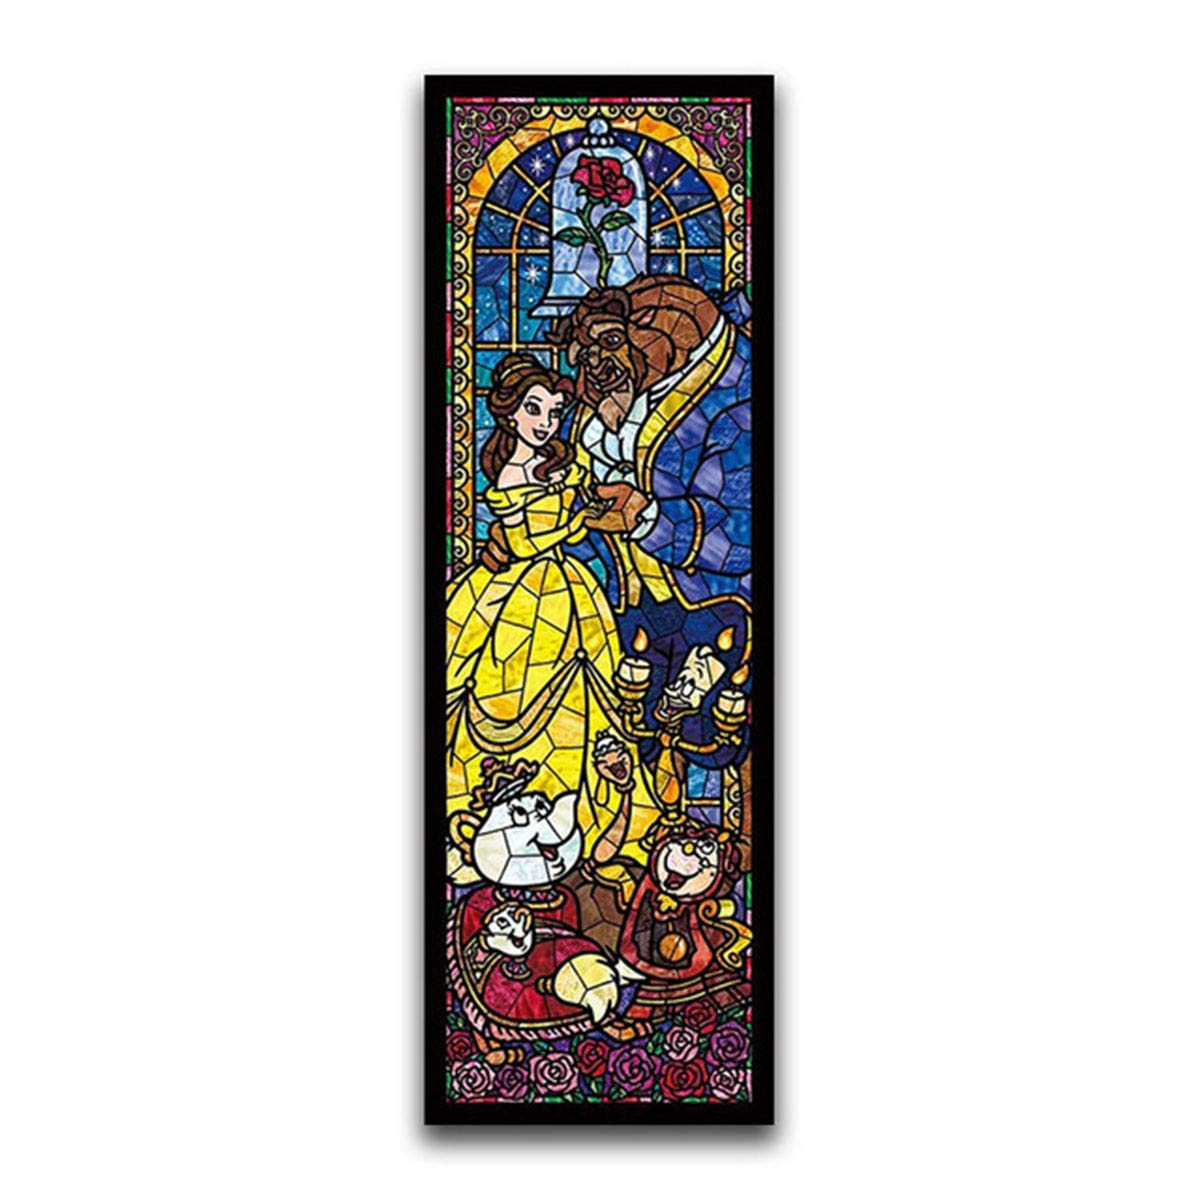 7.9x23.6inch//20x60cm Leezeshaw 5D DIY Diamond Painting by Number Kits Fameless Rhinestone Embroidery Paintings Pictures for Home Decor Beauty and The Beast